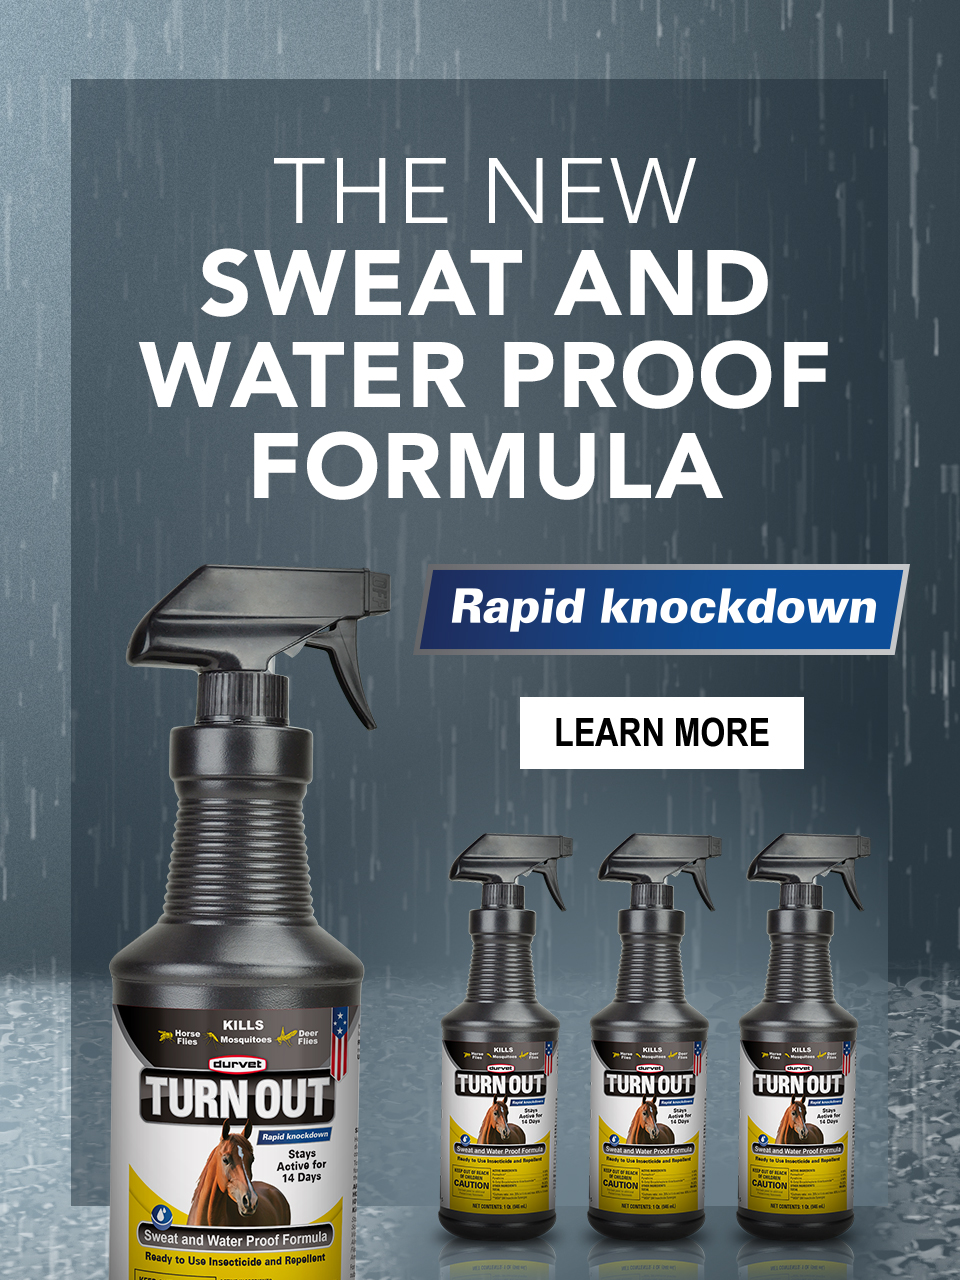 TURN OUT Sweat and Water Proof Formula